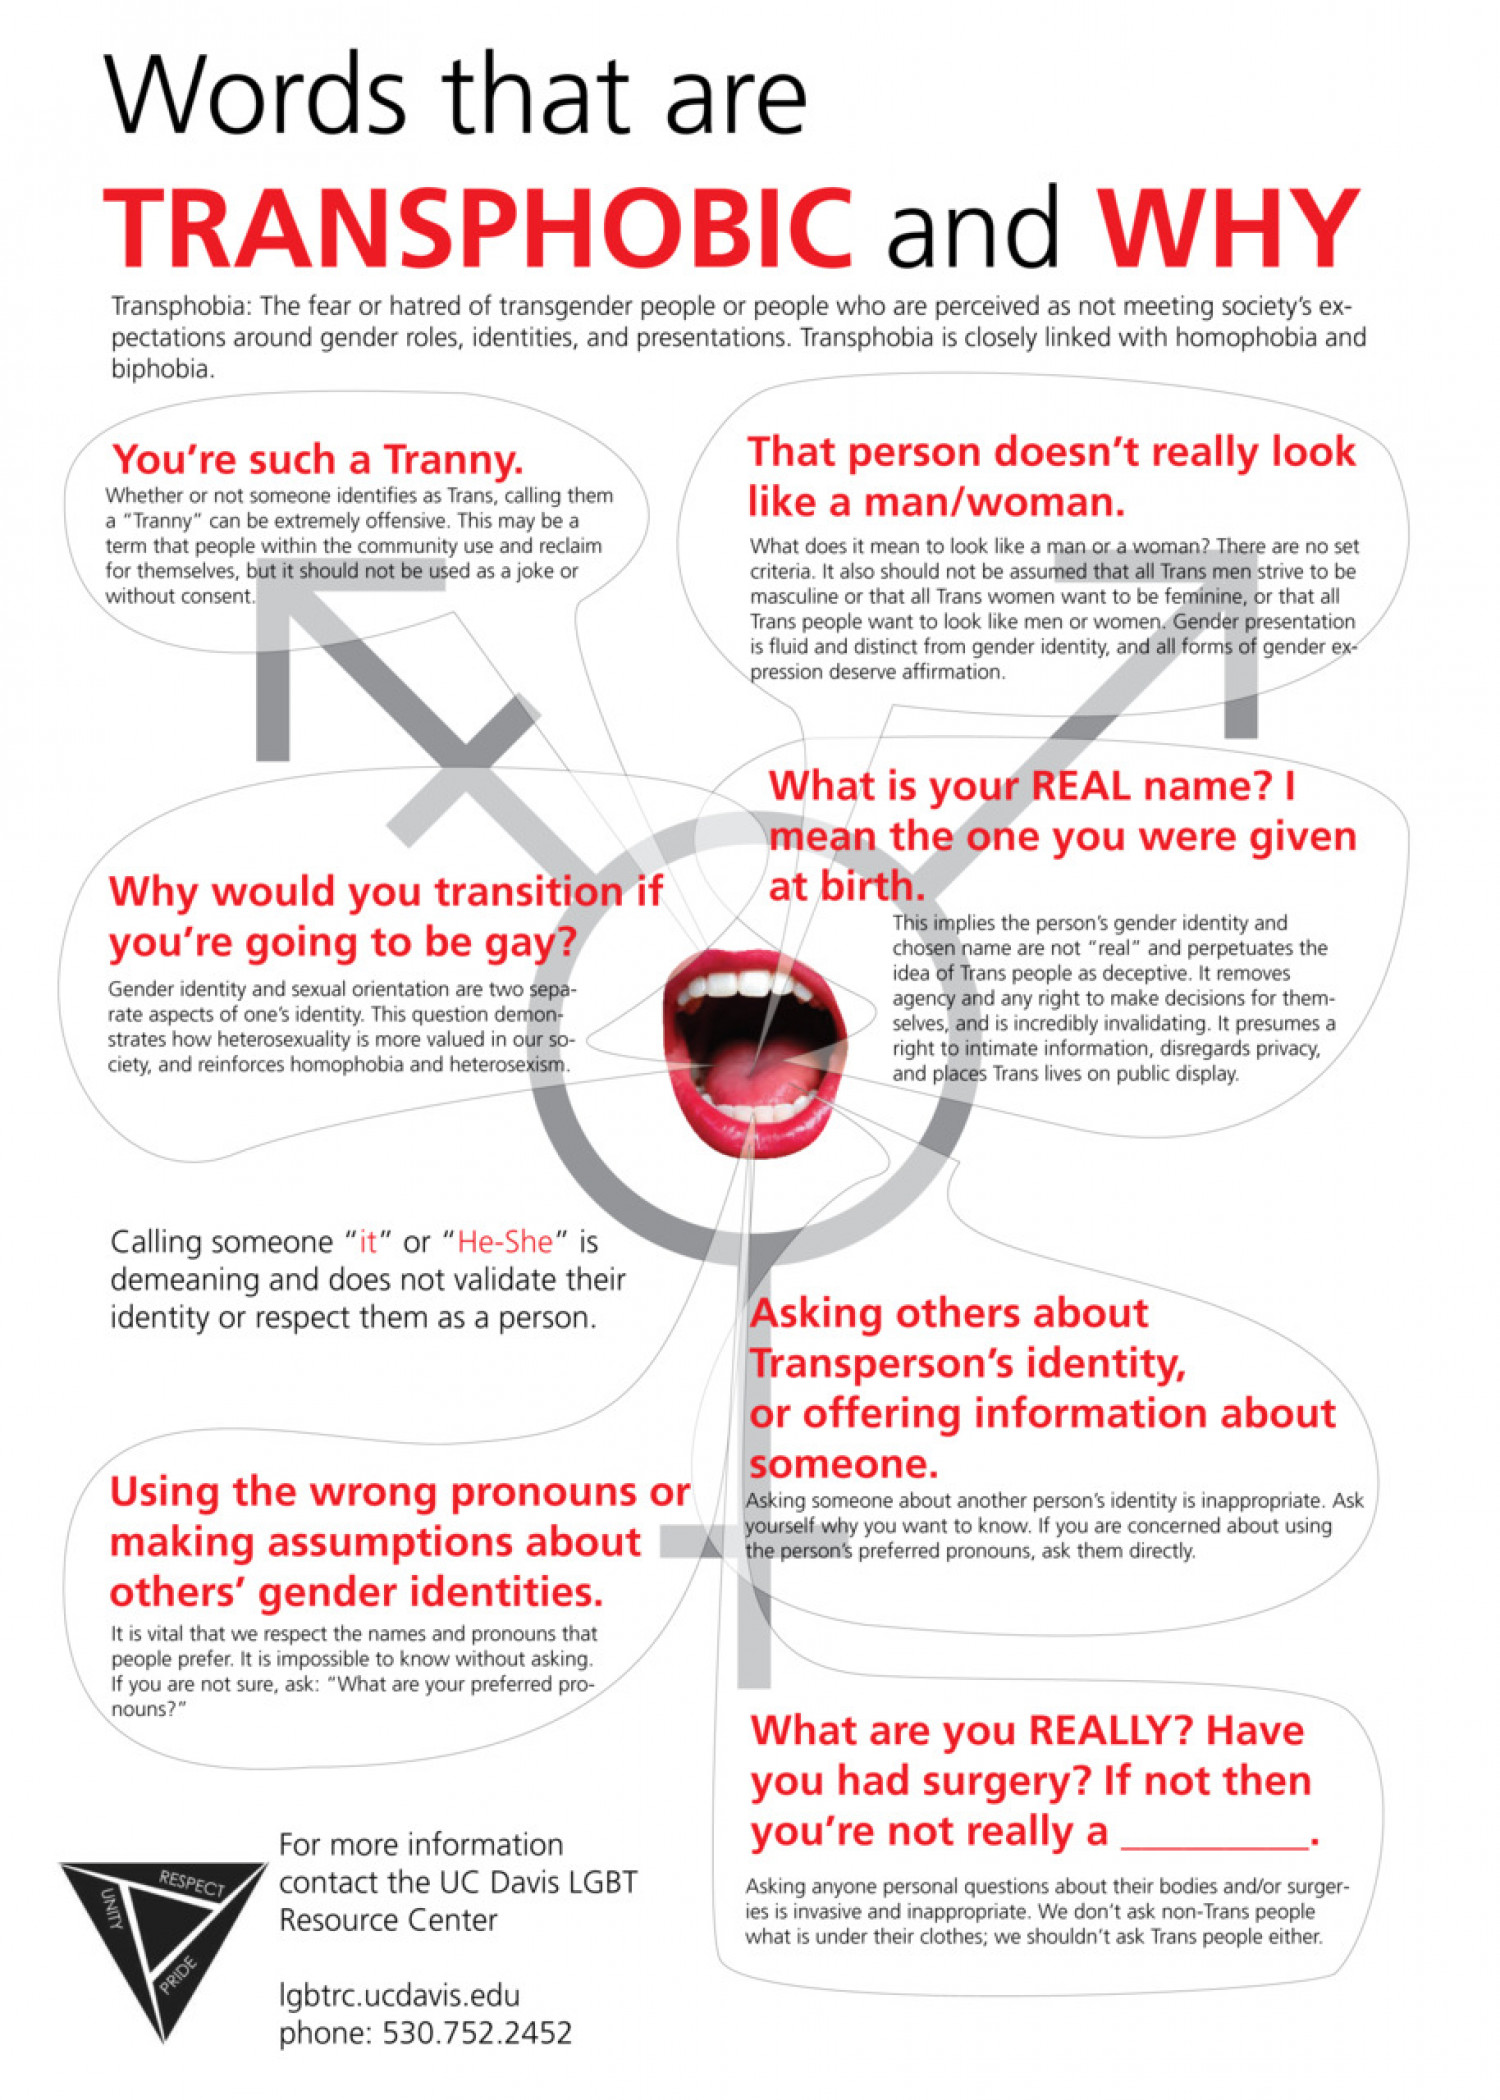 Words that are Transphobic and Why Infographic